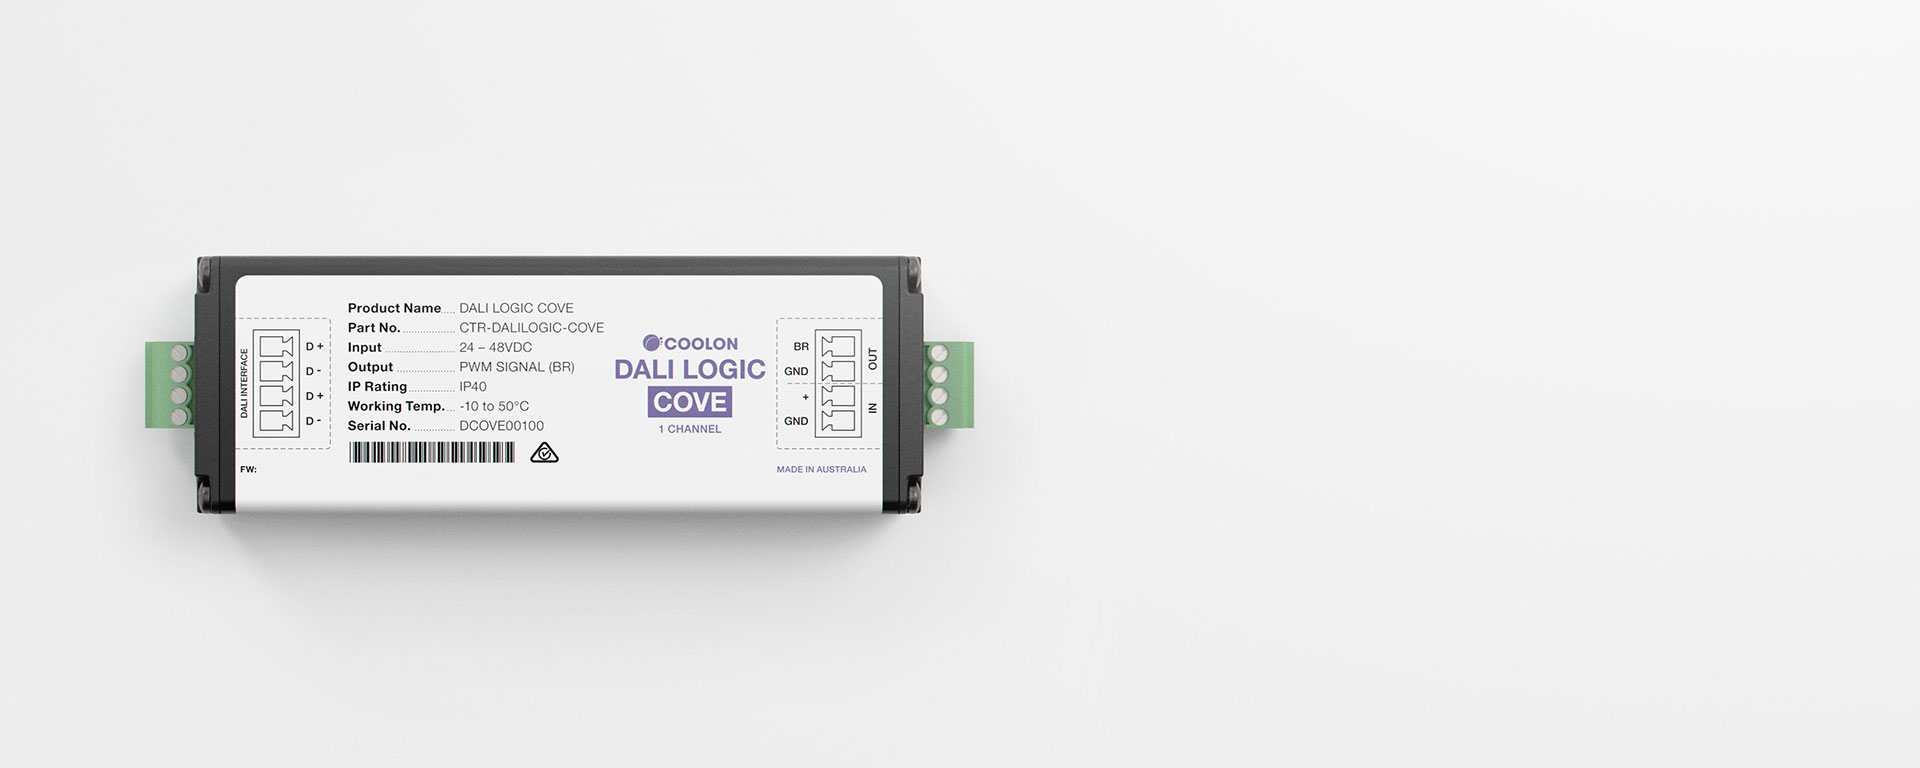 The DALI Logic Cove driver is designed to suit DALI LED applications when using Primo CC. A compact design allows it to be installed in the smallest of spaces.